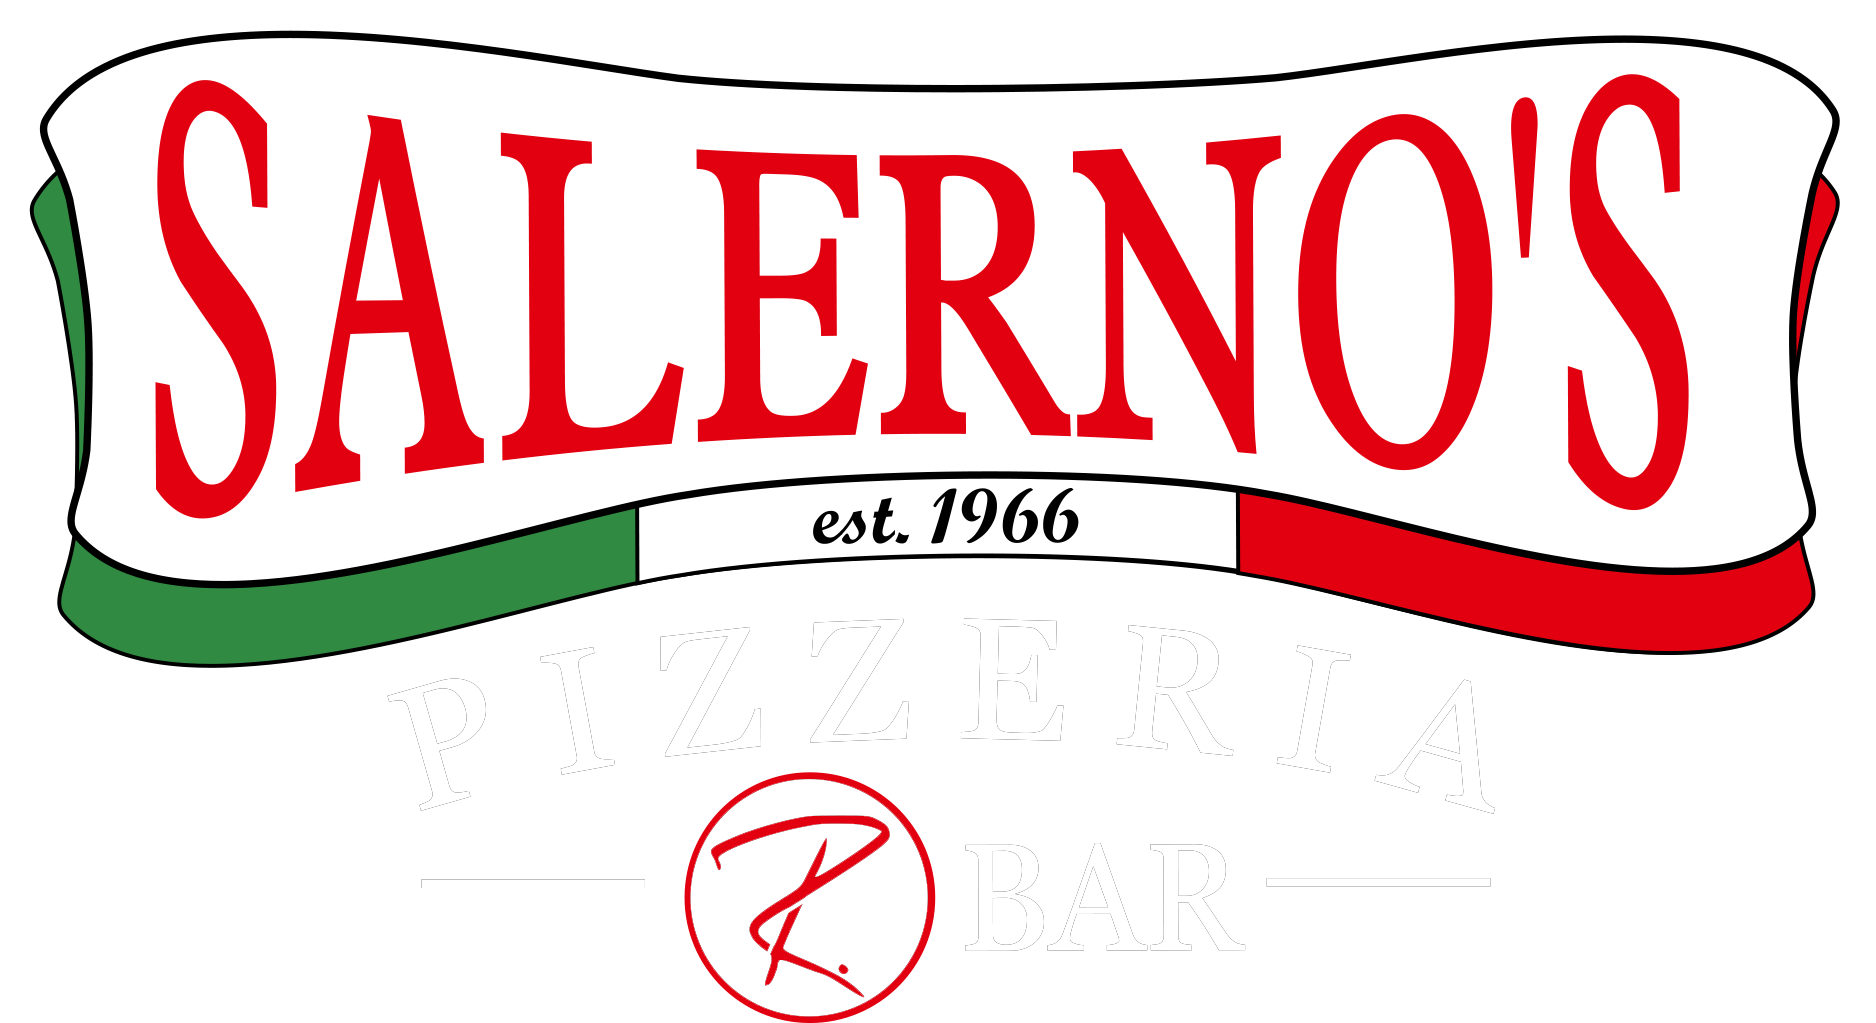 Salerno's Pizzeria & R. Bar - McHenry